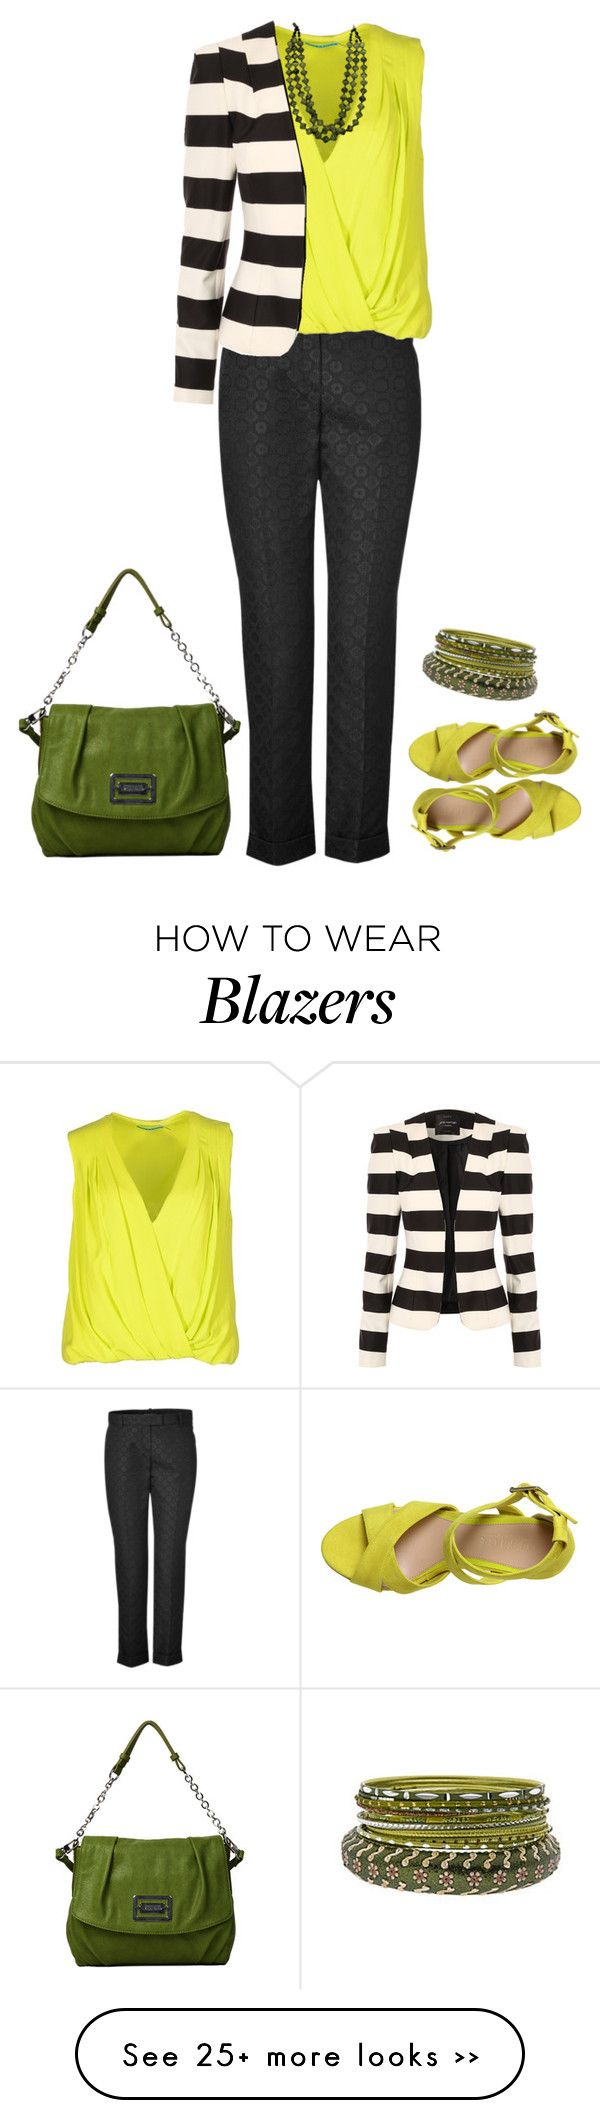 """Office Passion"" by stacylynnwill on Polyvore featuring Theory, Alice + Olivia, Jane Norman, Office, Lane Bryant and Liz Claiborne"